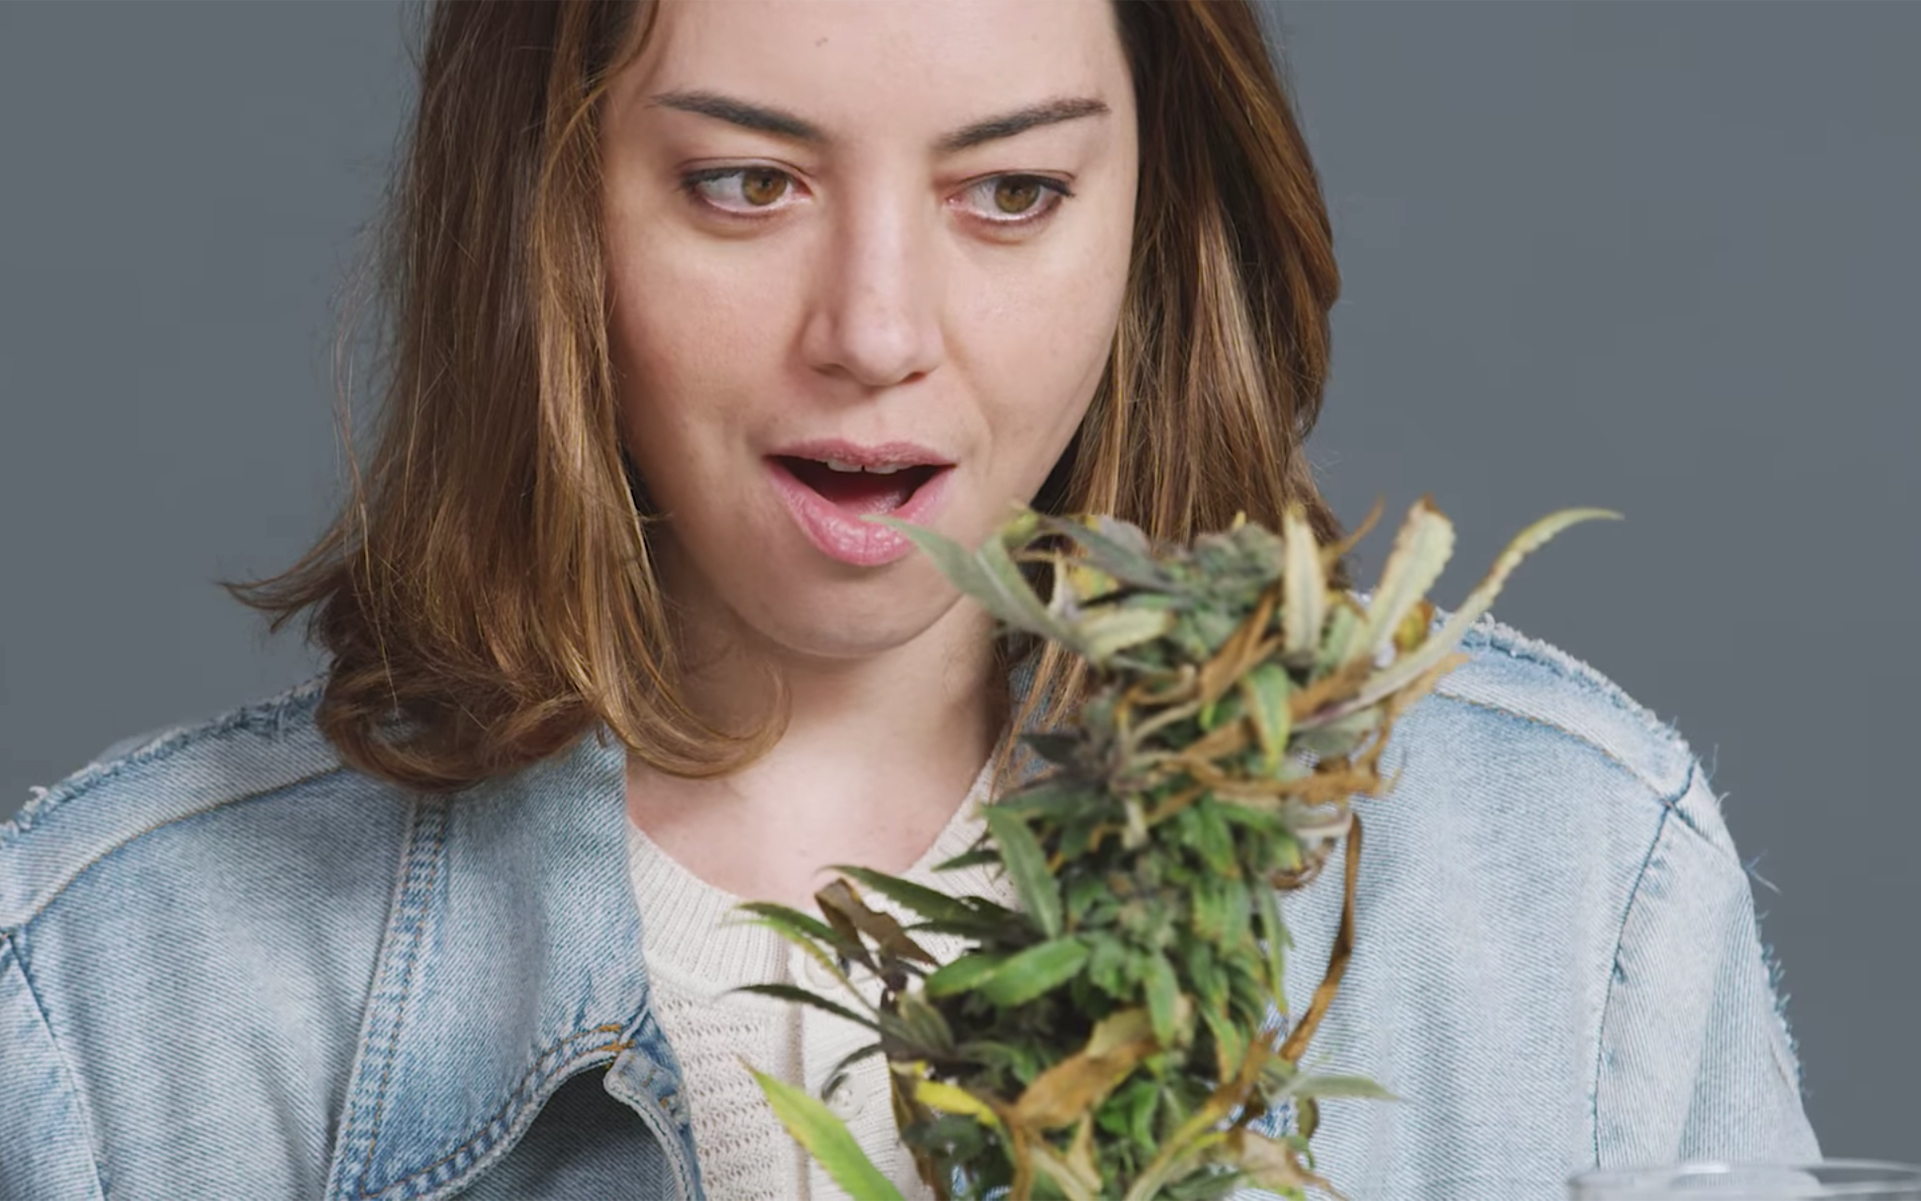 Watch This: Aubrey Plaza Smokes With the 'Weed Nuns'